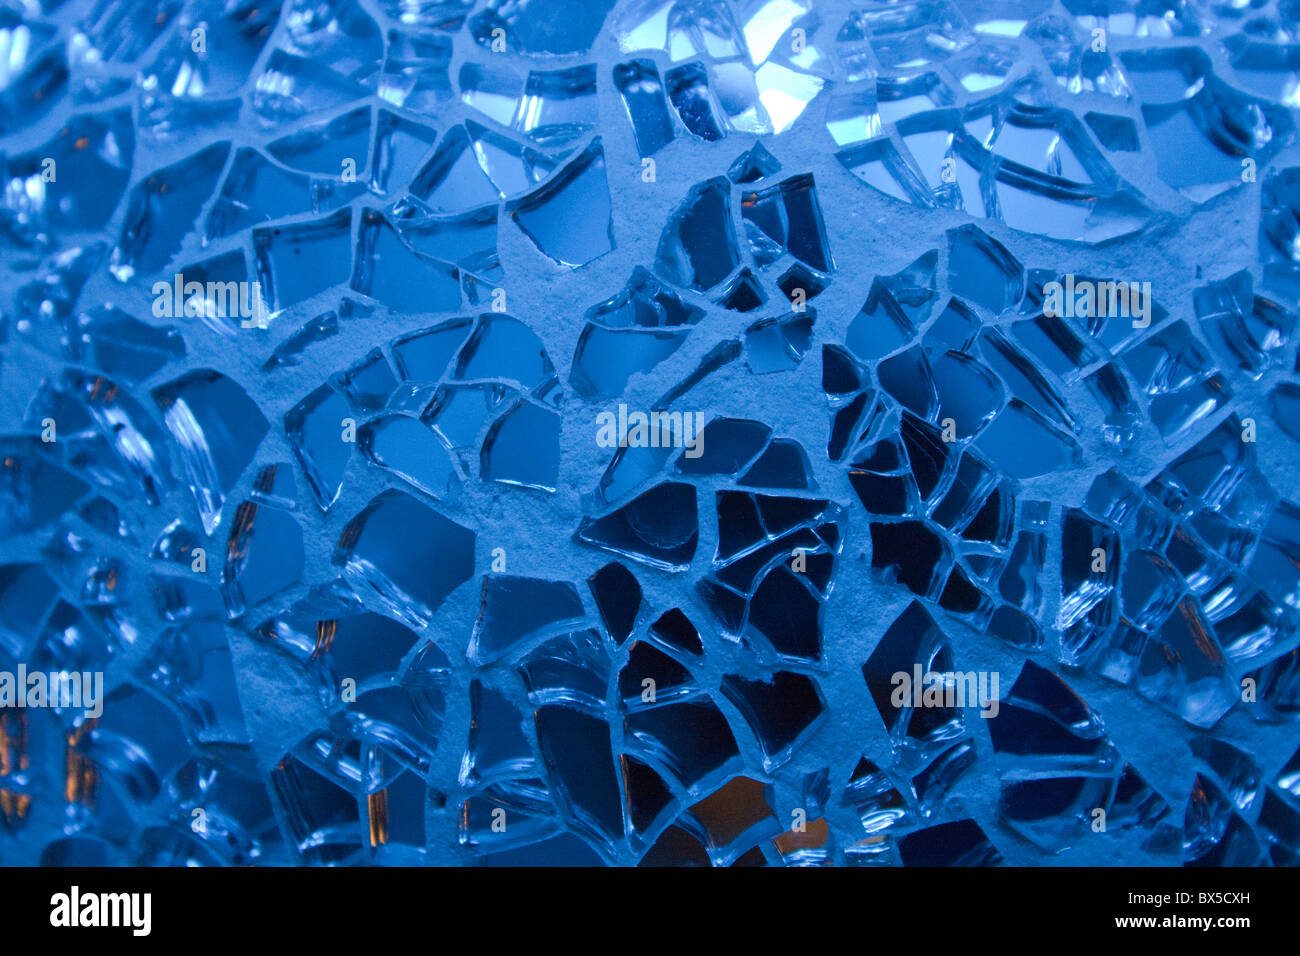 Abstract blue cracked glass background - Stock Image